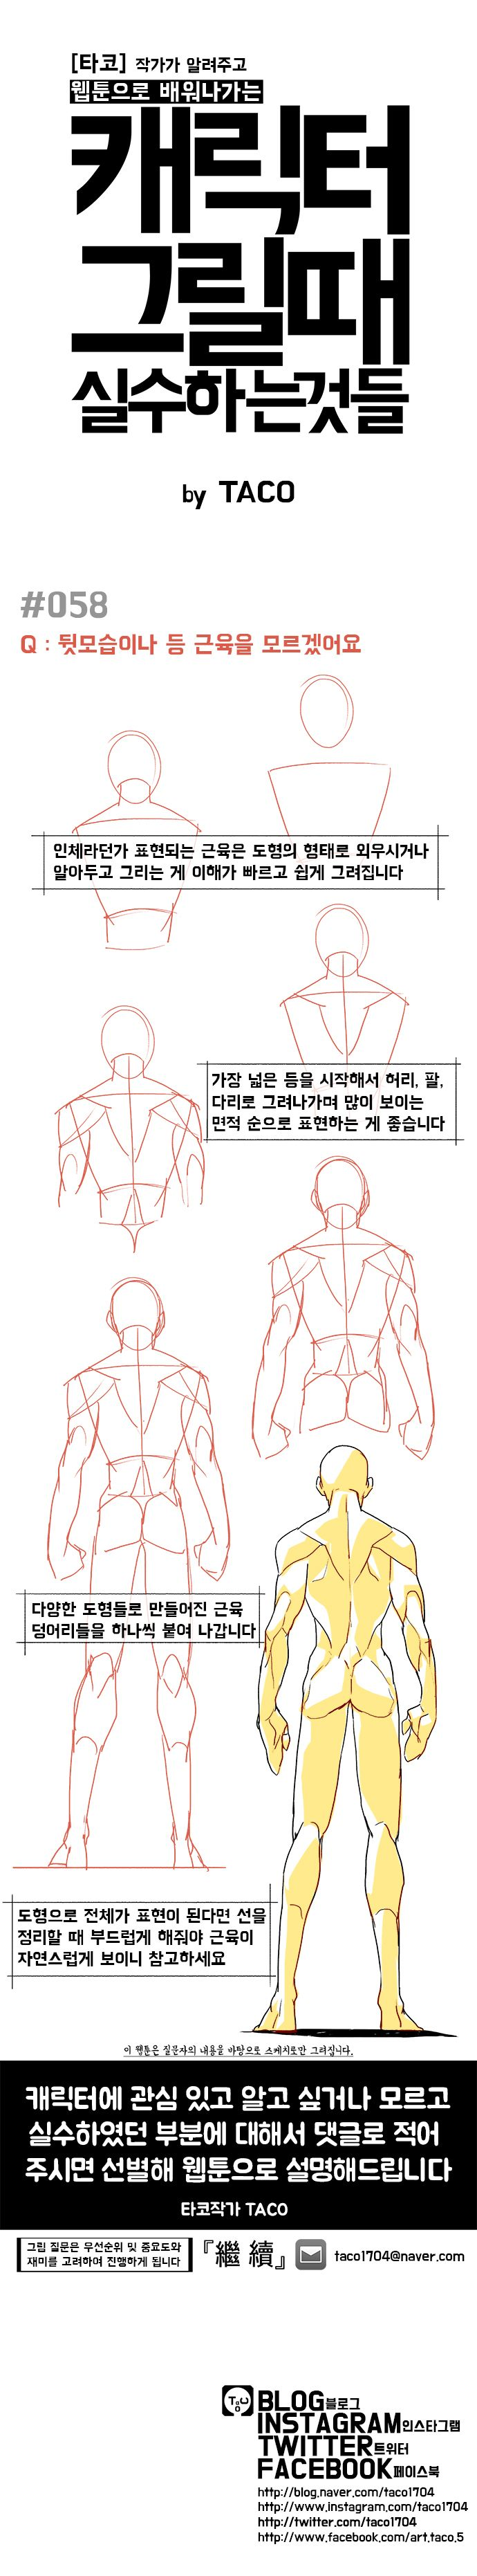 i dont understand this but it looks like a back muscle tutorial i could be wrong tho